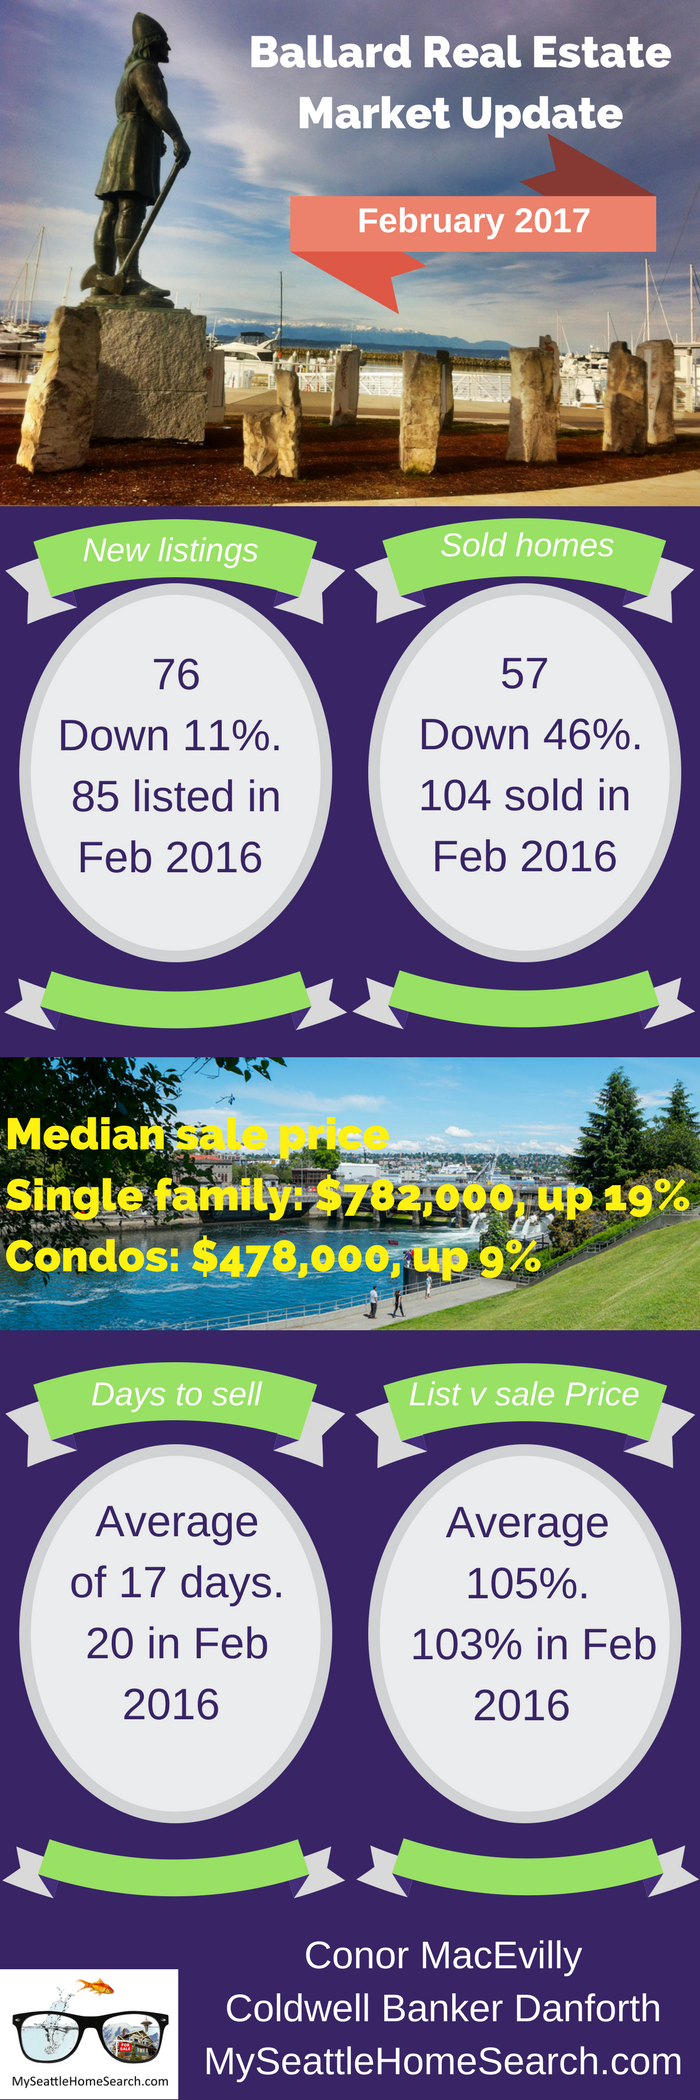 Ballard Seattle real estate market update for February 2017